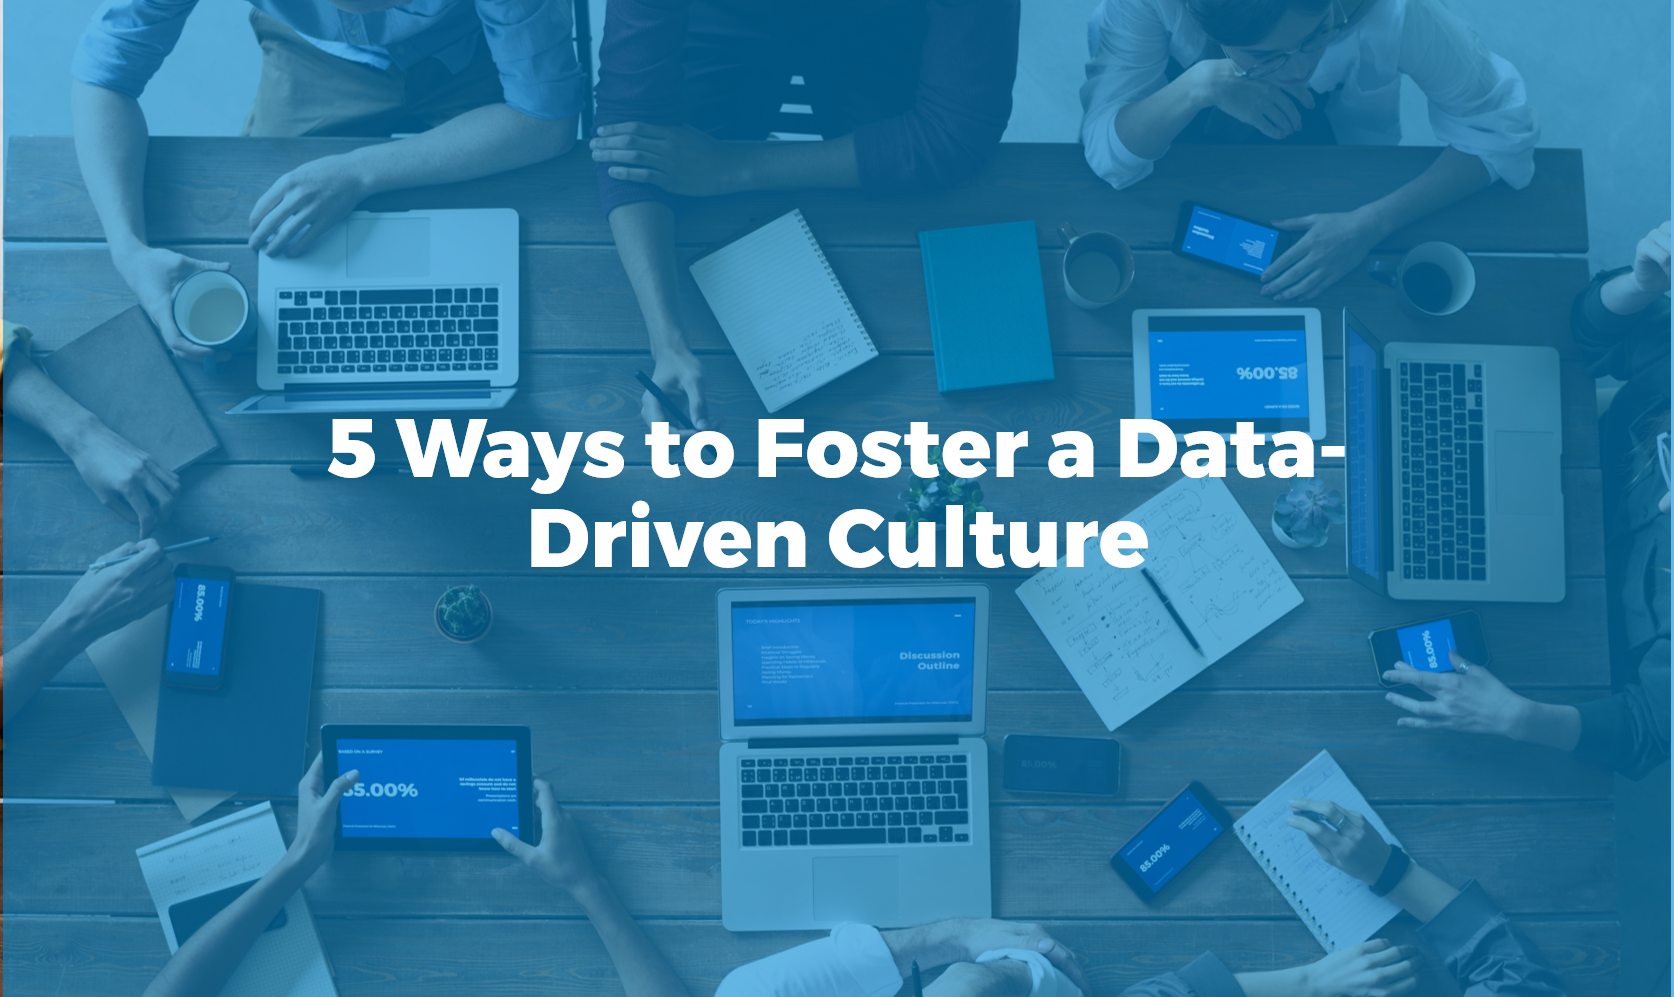 5 ways to foster data driven culture